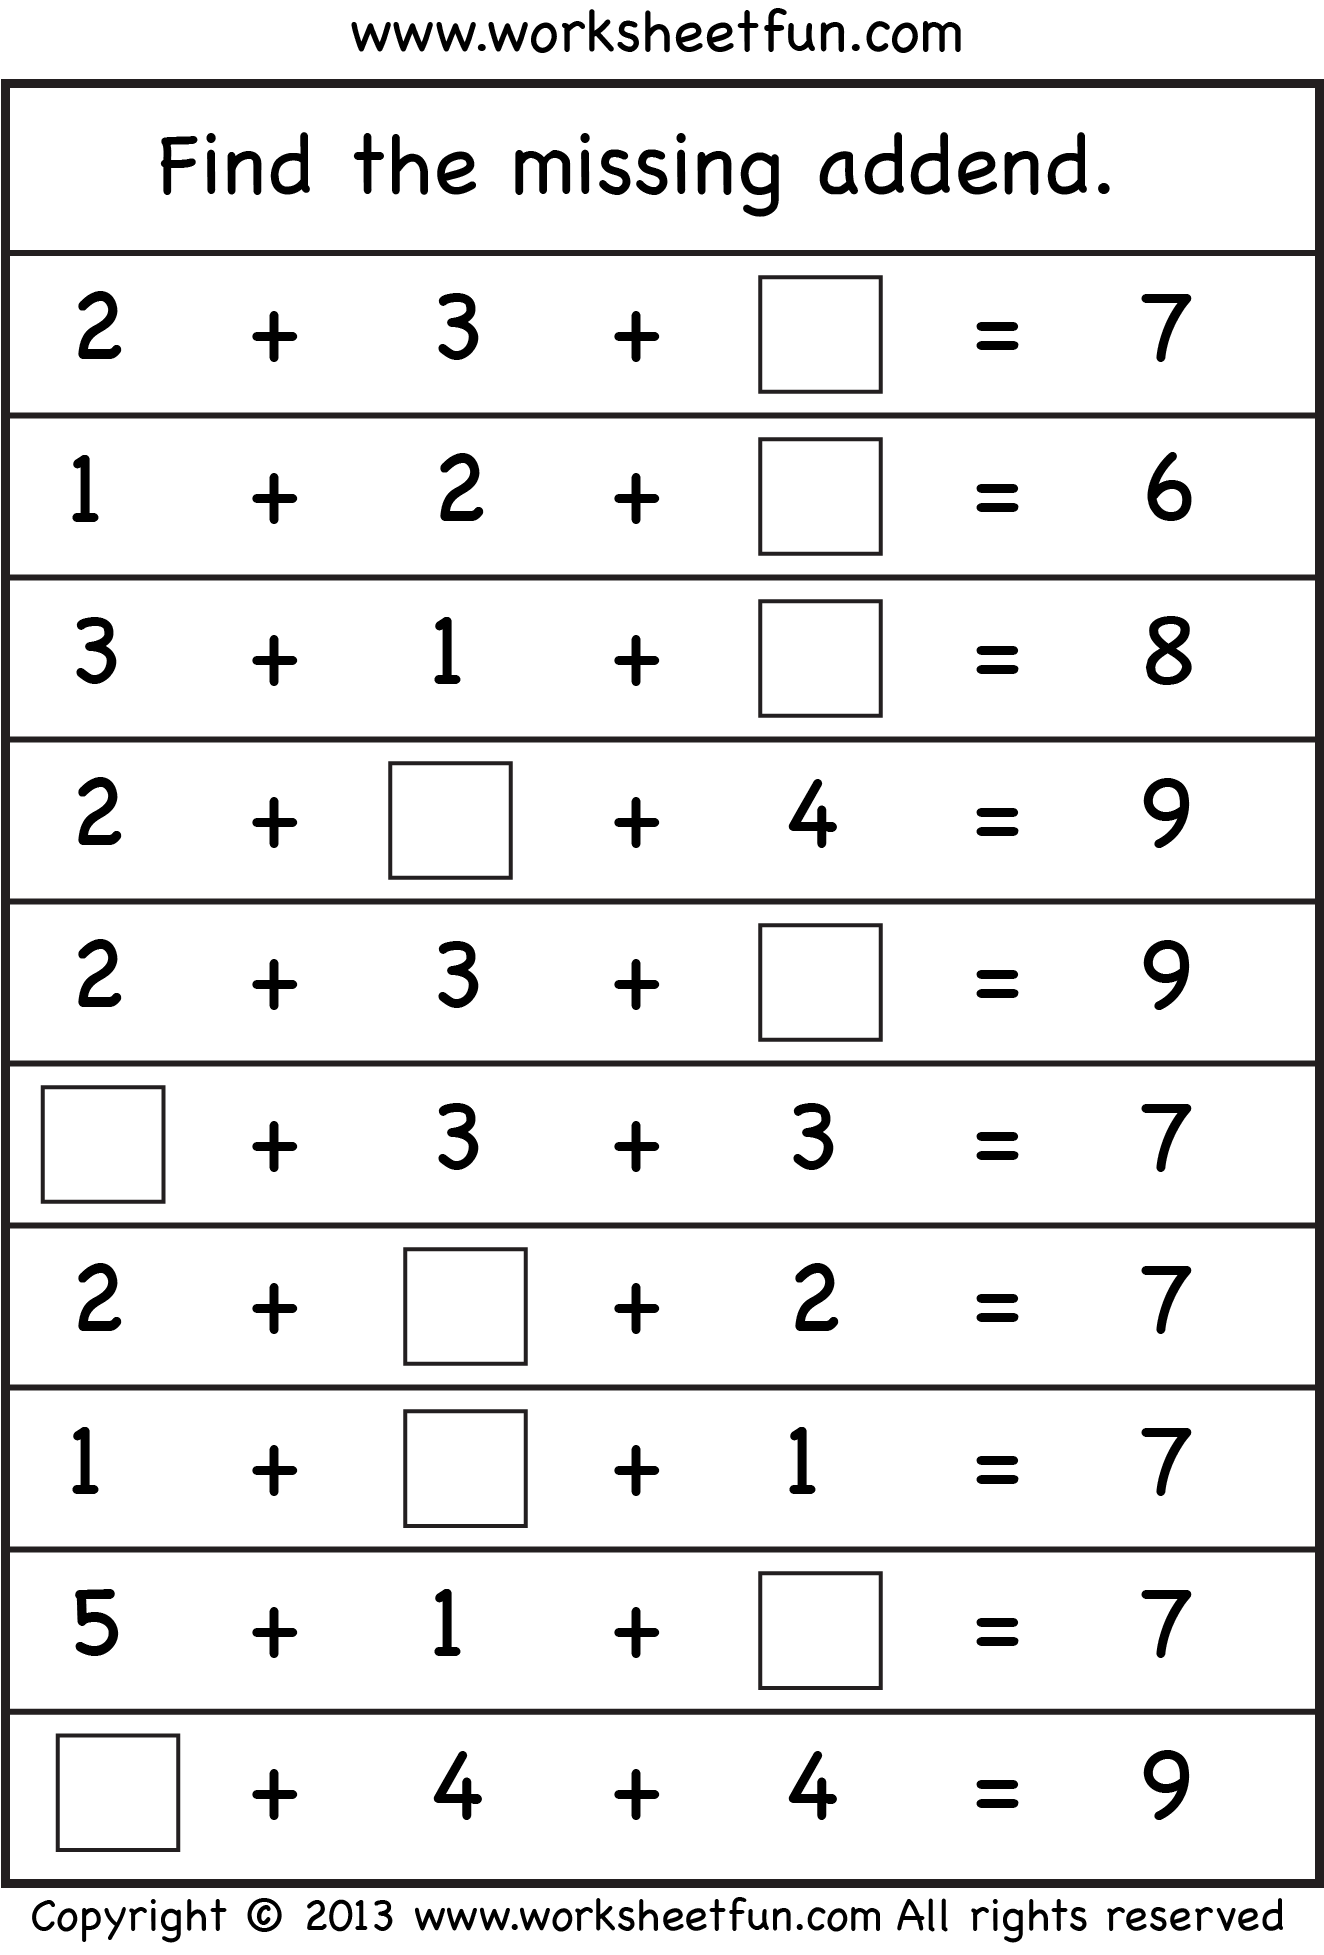 hight resolution of missing-addend-level2-W1-.png (1324×1955)   Mental maths worksheets